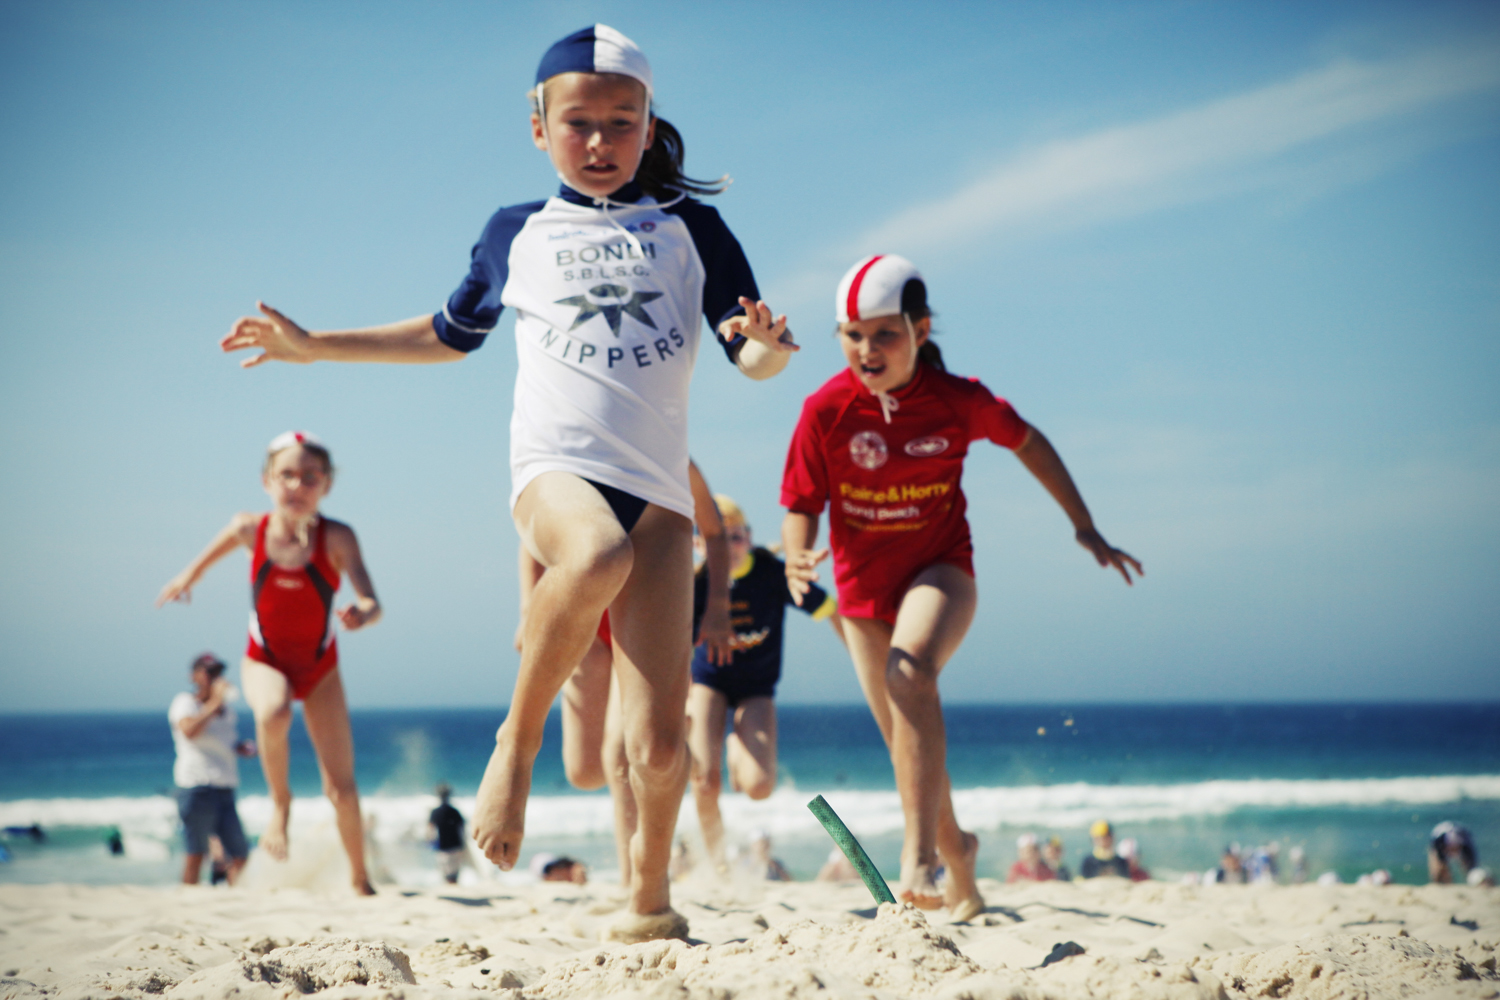 Nippers_Surf_Life_Saving_Bondi_Beach.07.jpeg